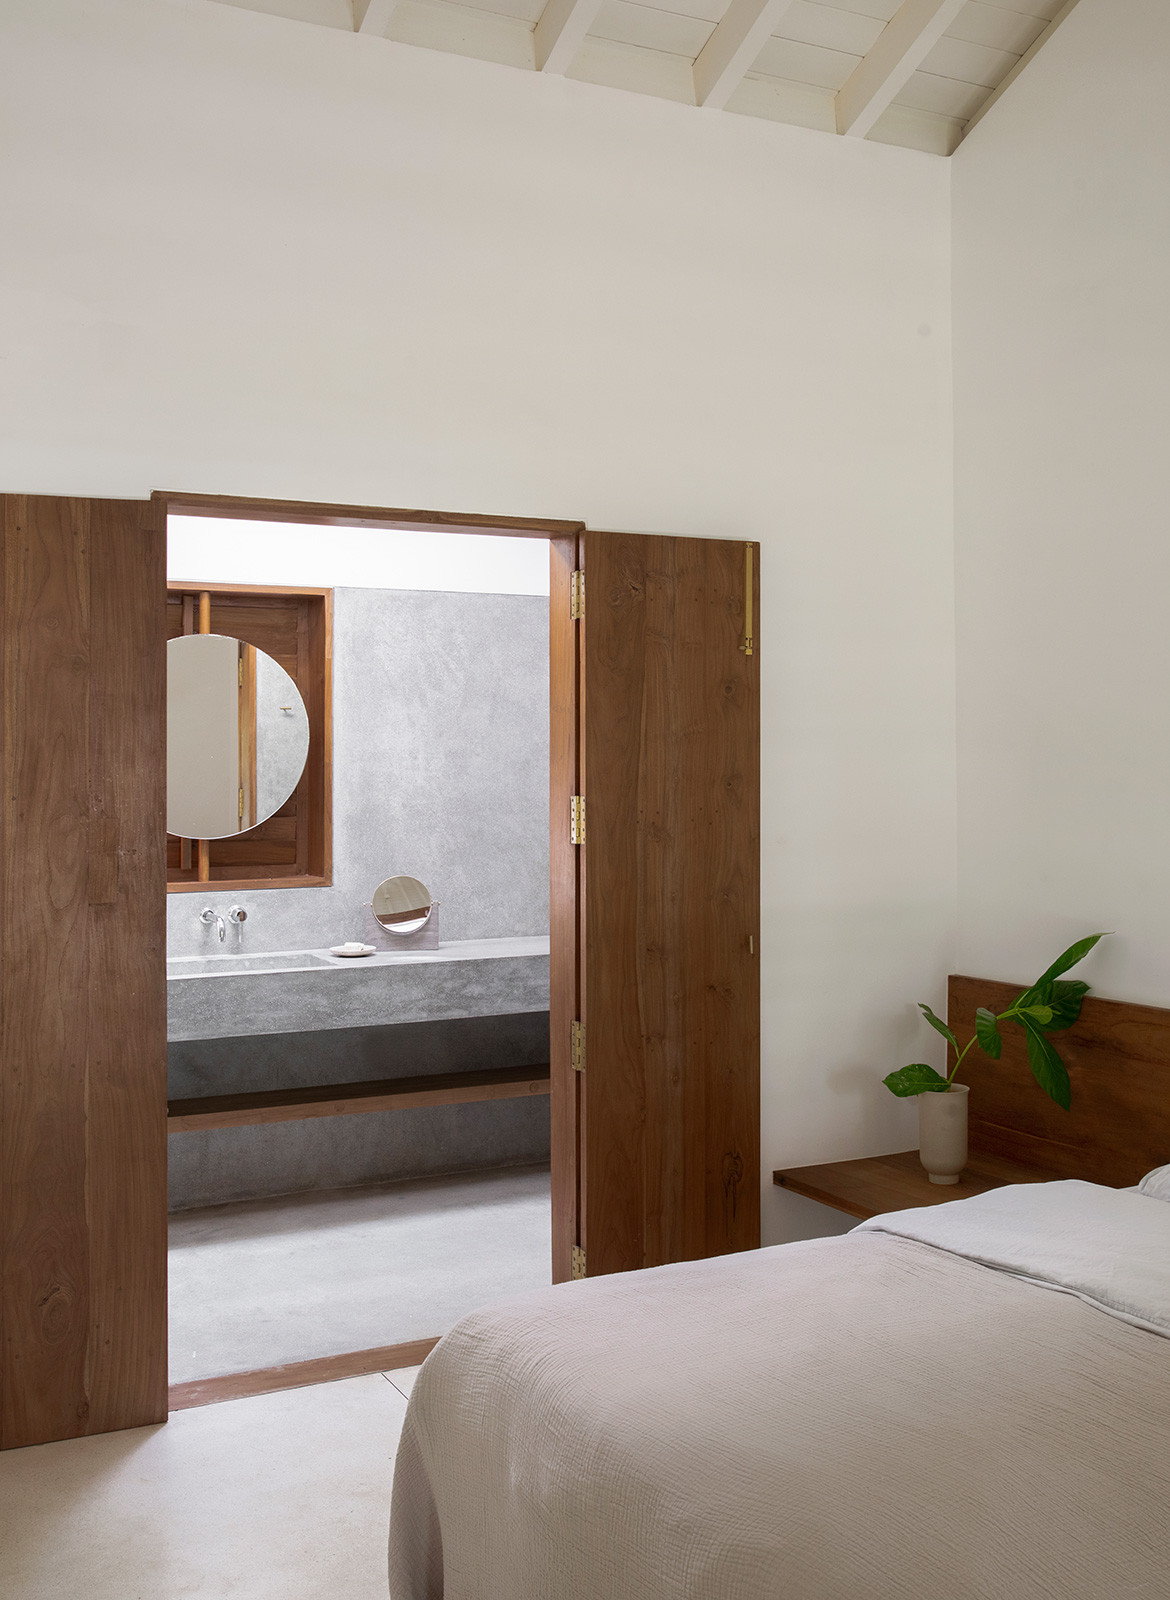 K House Norm Architects Aim Architecture doors to bathroom